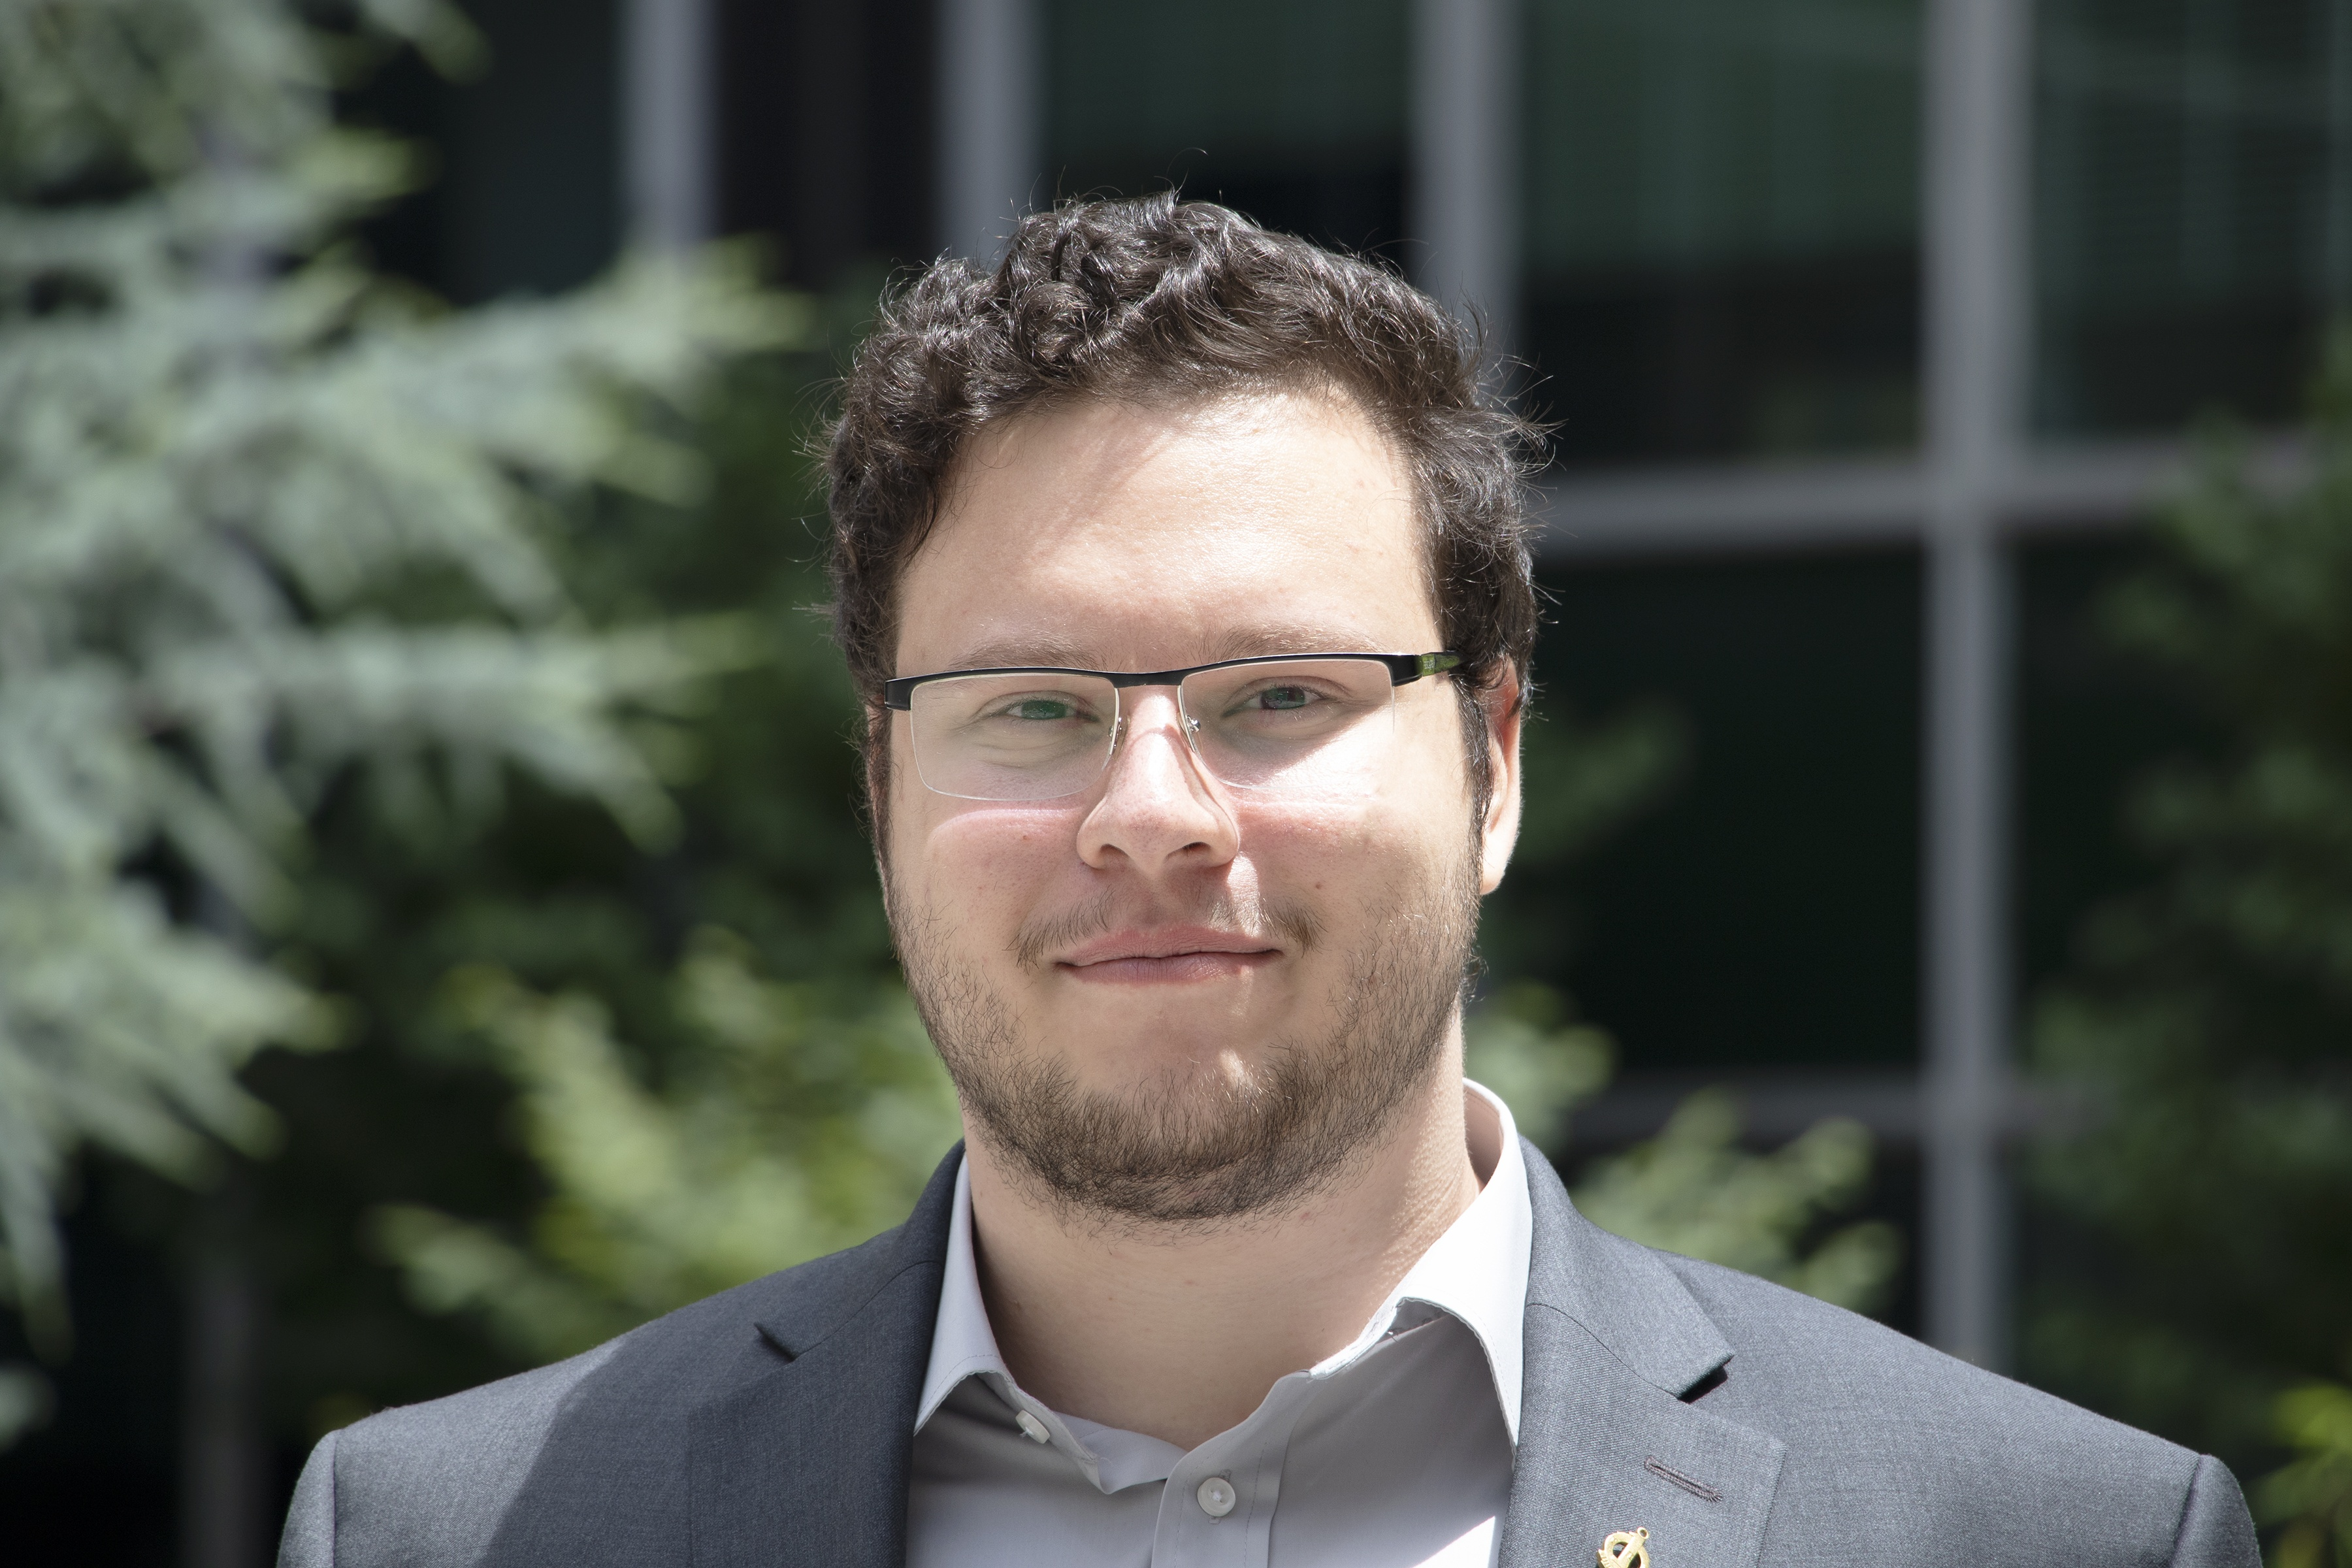 Andreas, Illinois Institute of Technology